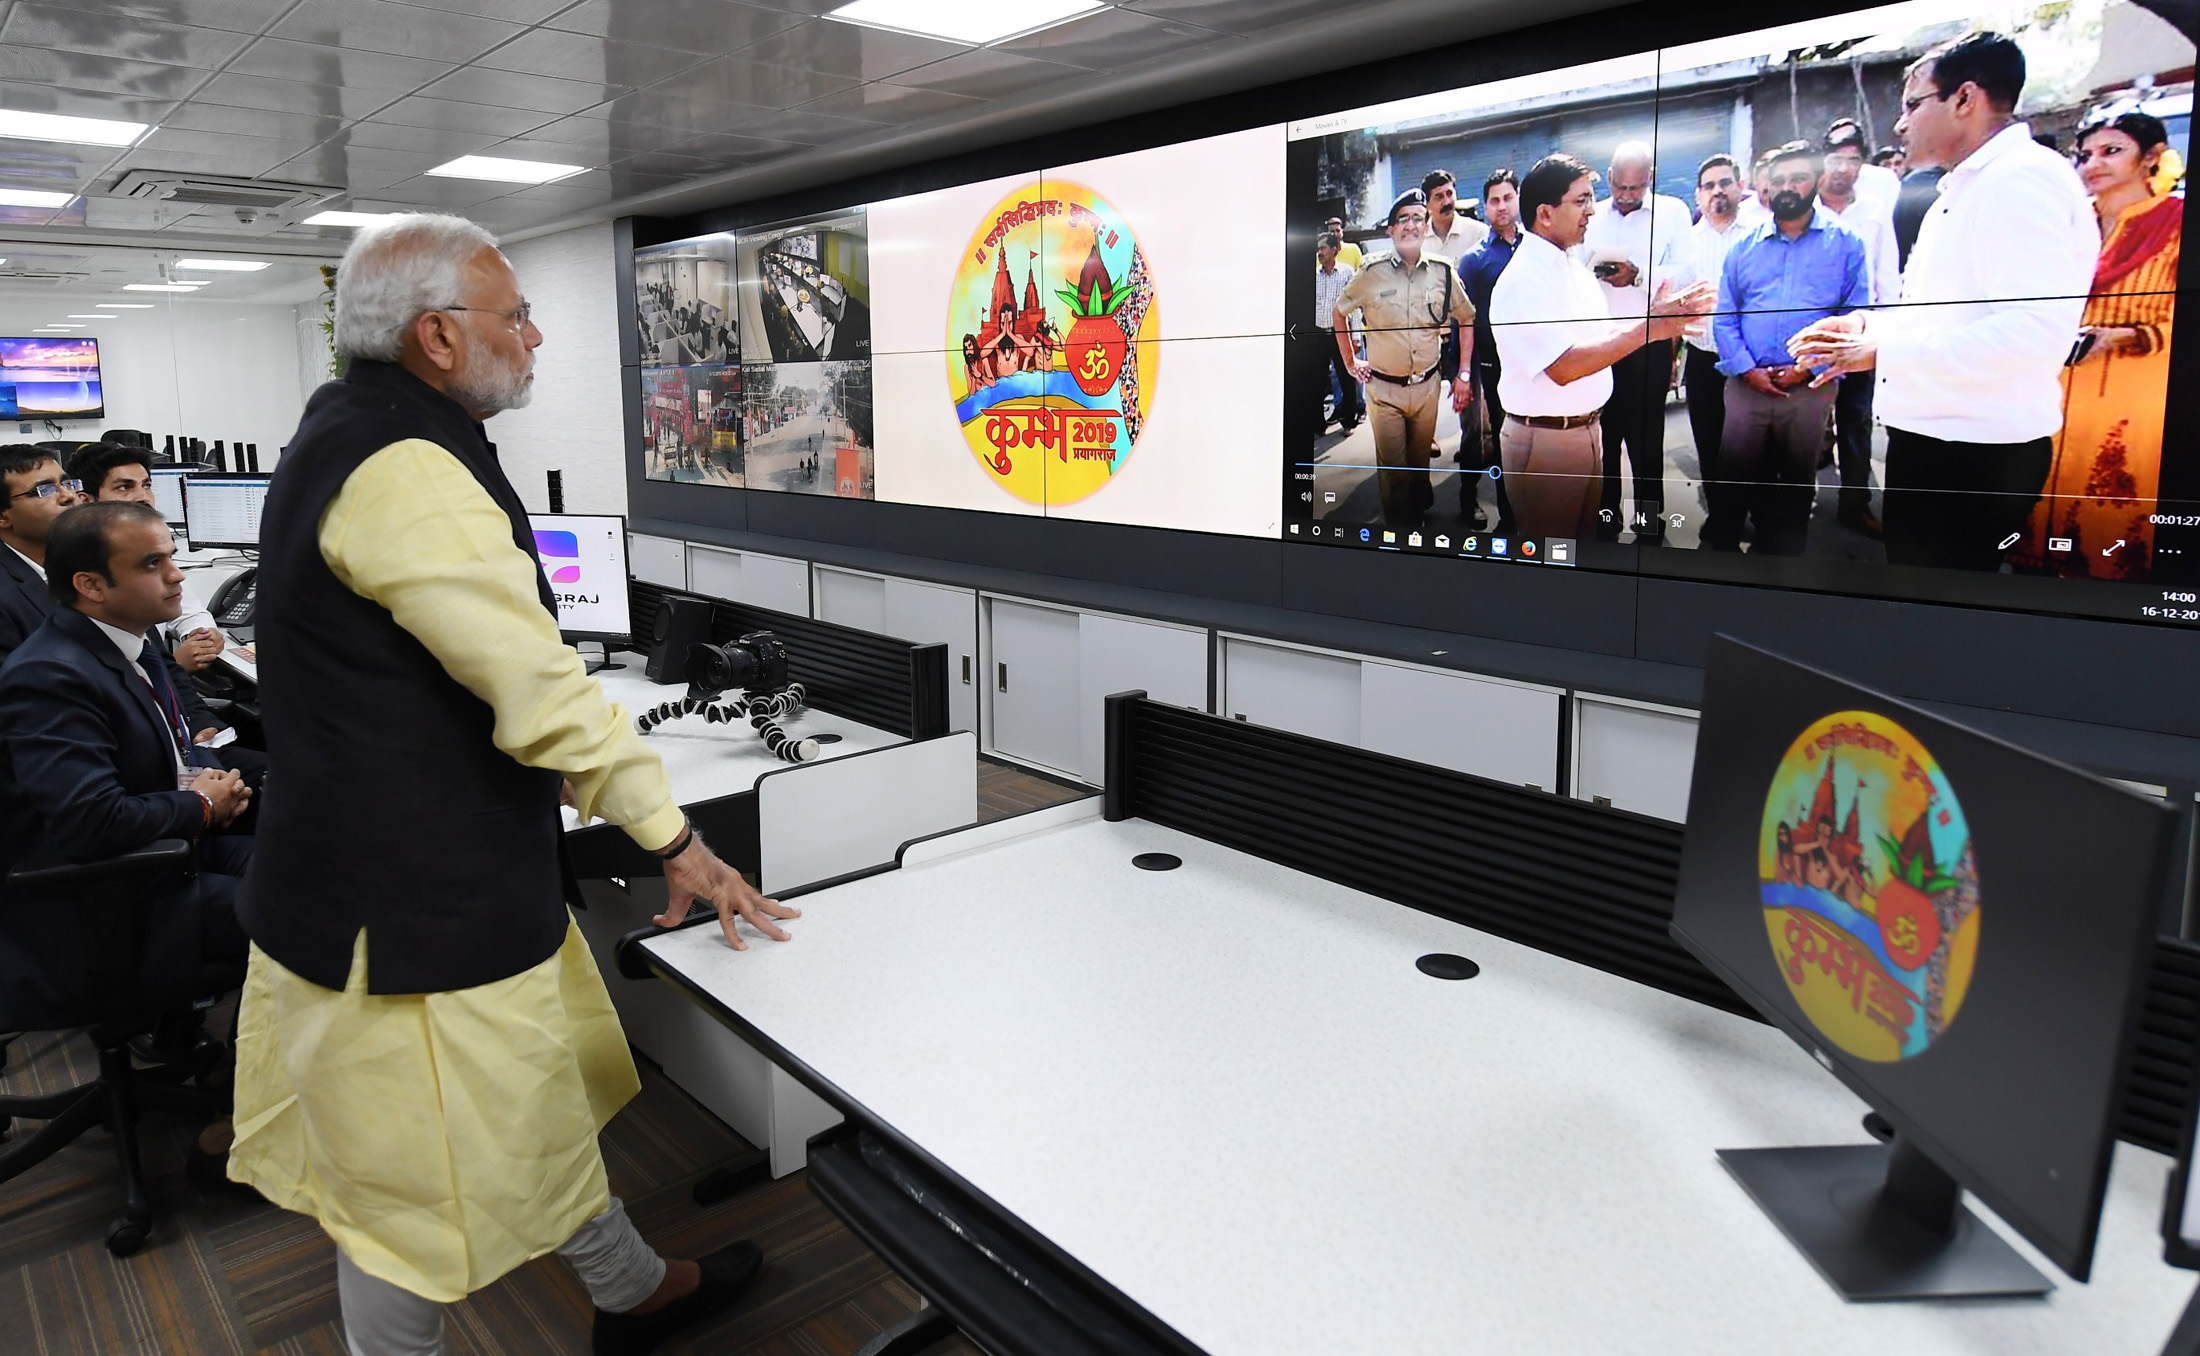 Prime Minister Narendra Modi at the inauguration of a state-of-the-art Command and Control Centre for the Kumbh Mela, at Prayagraj, in Uttar Pradesh (Photo courtesy: PMO